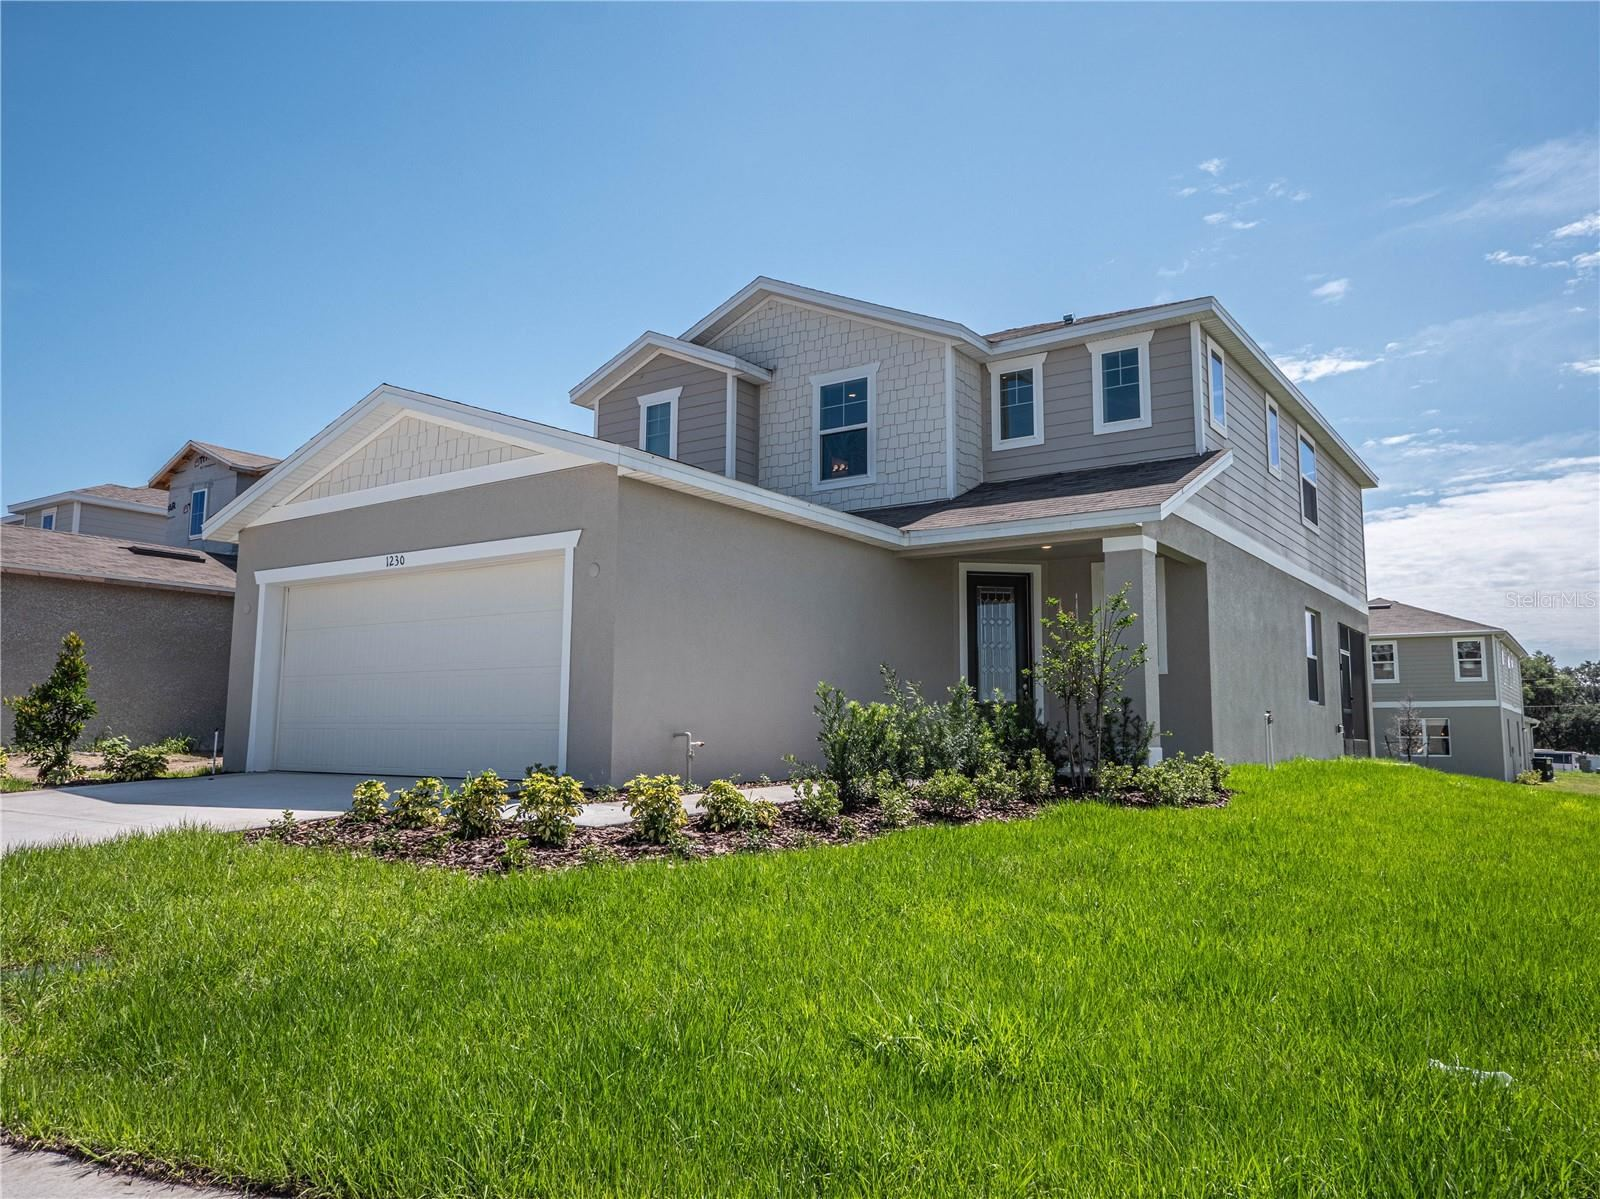 1230 FOREST GATE CIRCLE, HAINES CITY, FL 33844 (MLS ...